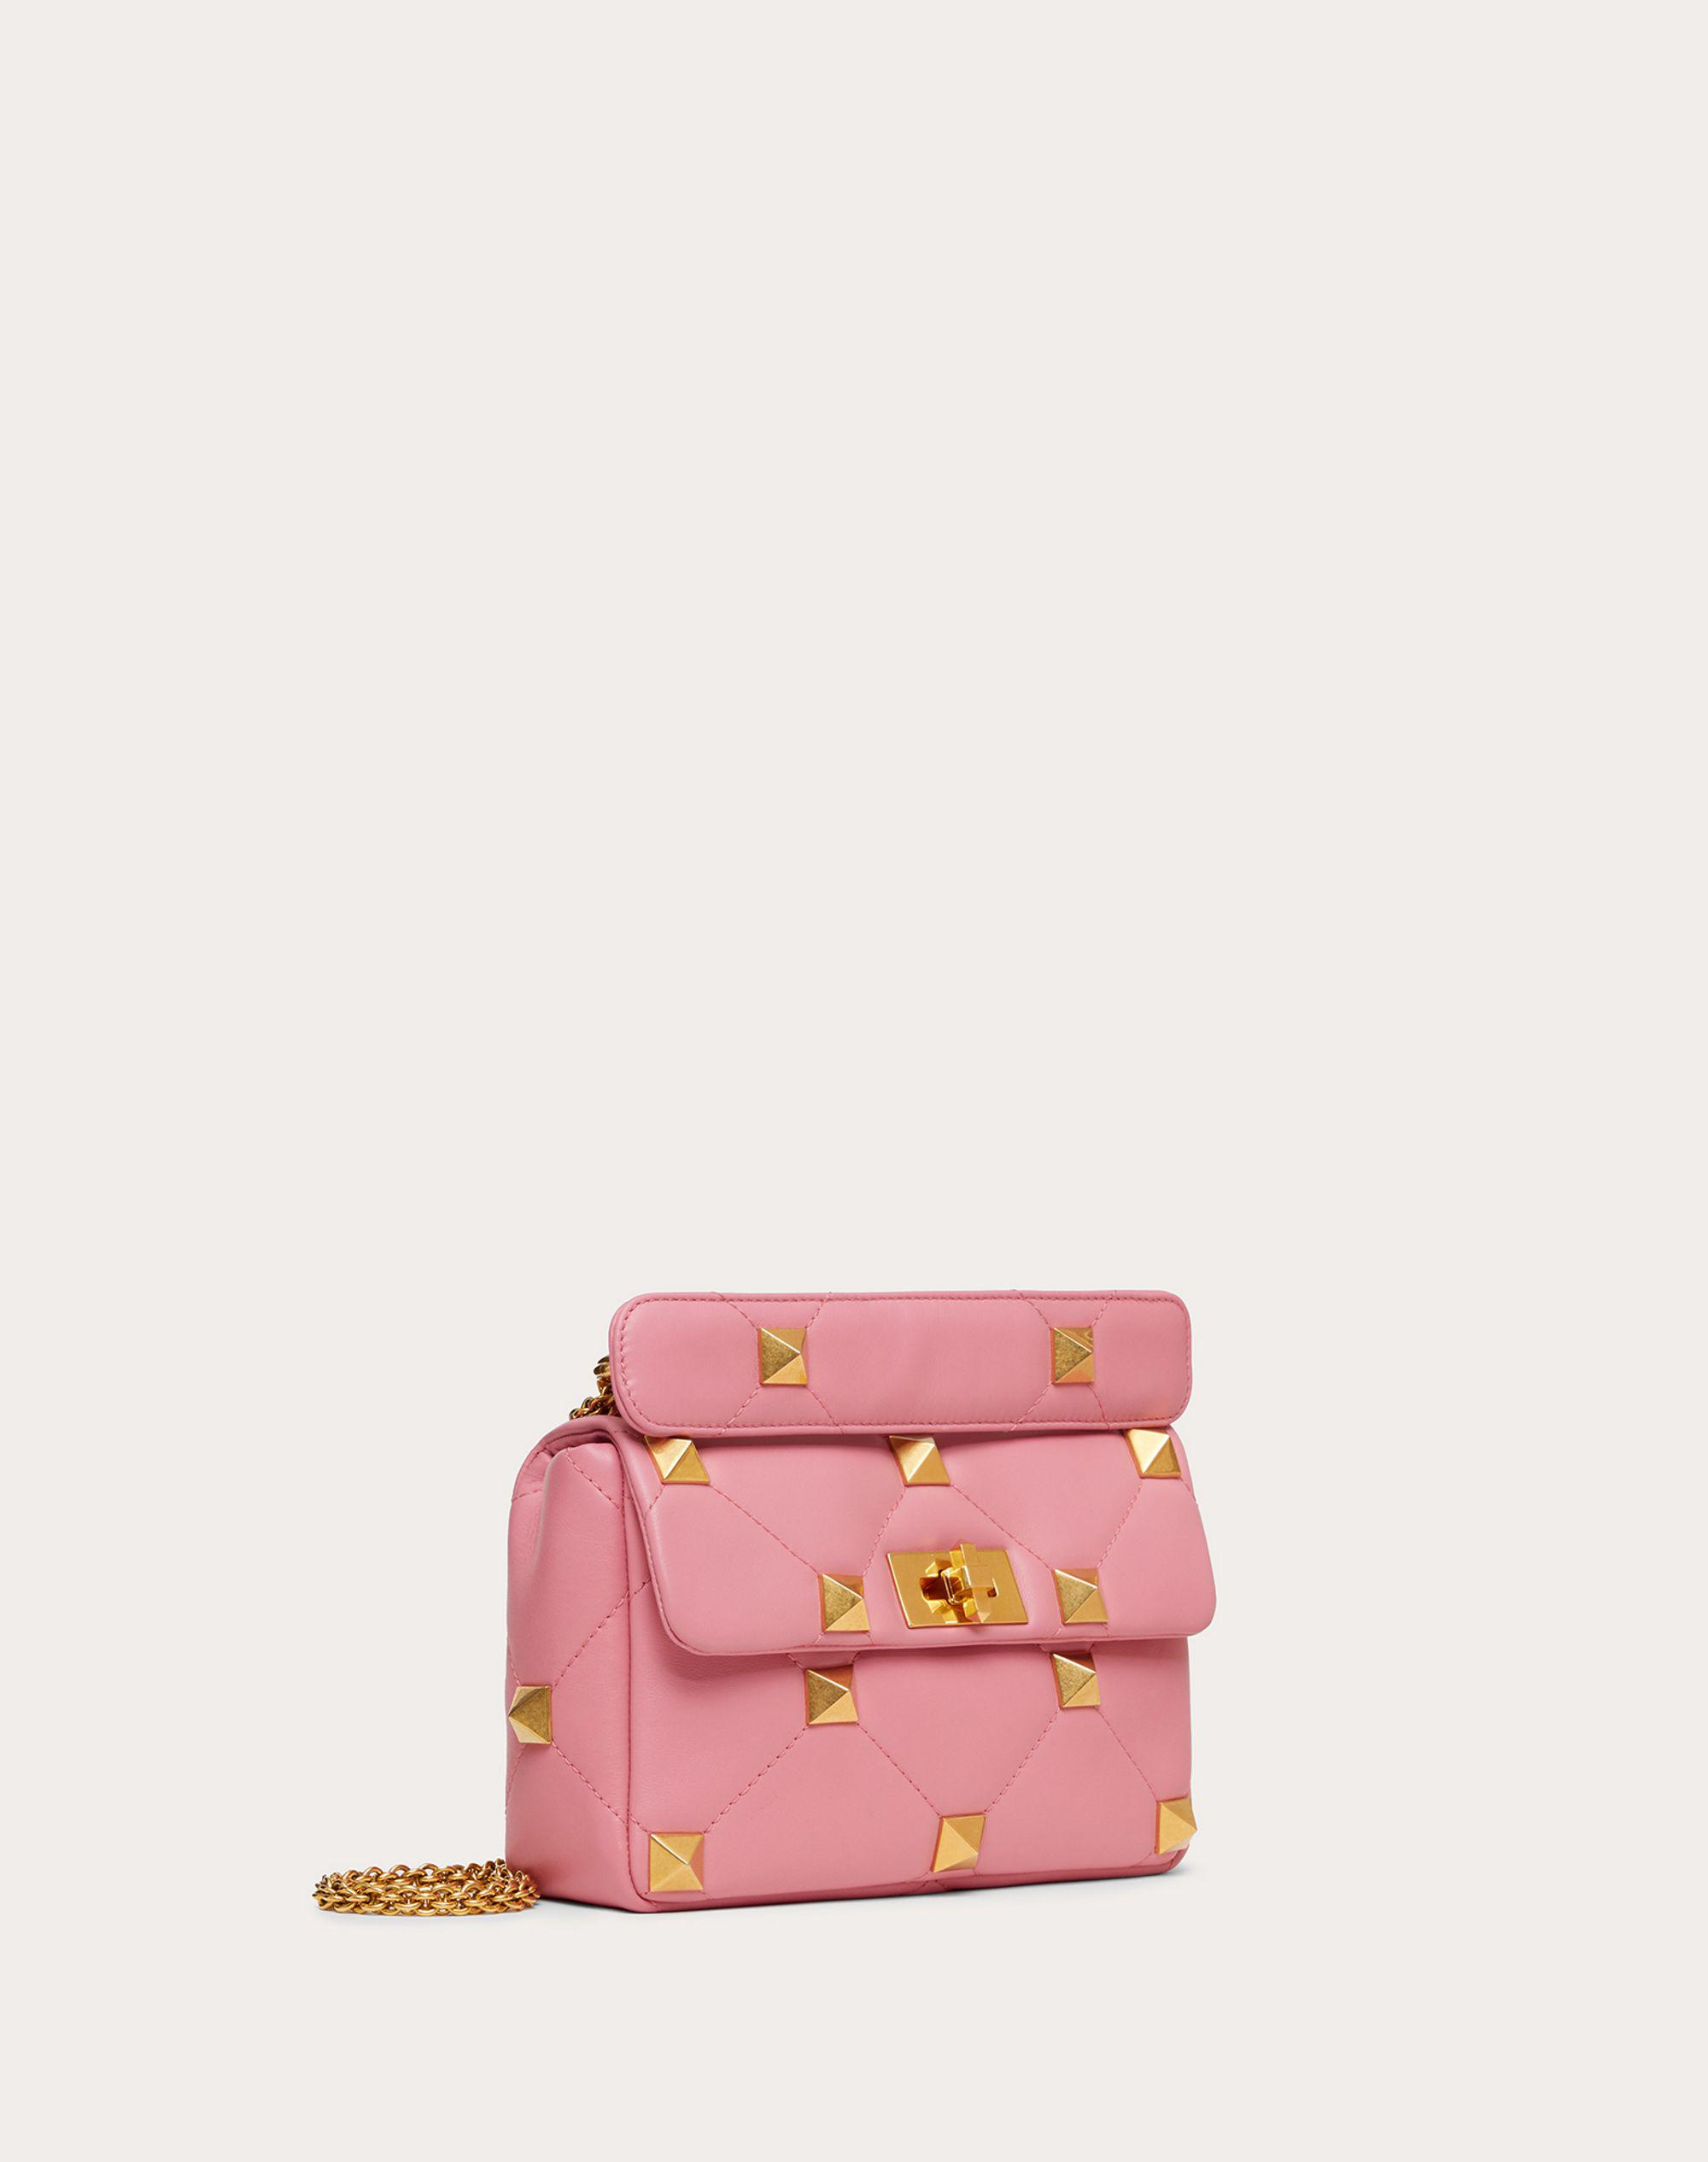 Medium Roman Stud The Shoulder Bag in Nappa with Chain 1